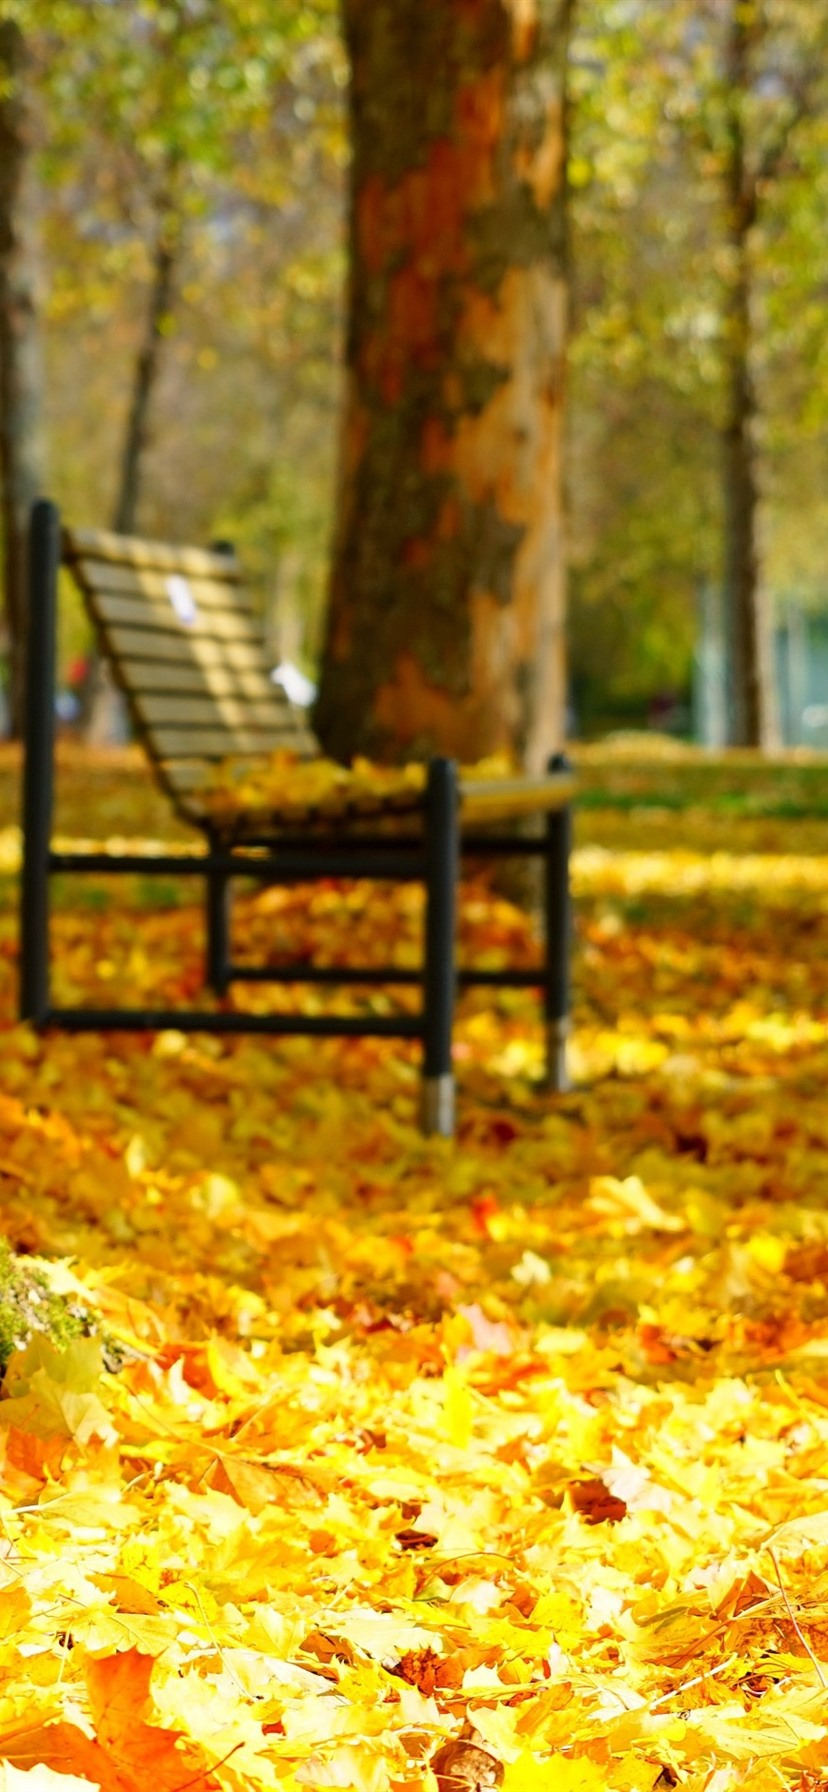 Many Golden Maple Leaves Bench Trees Autumn Park